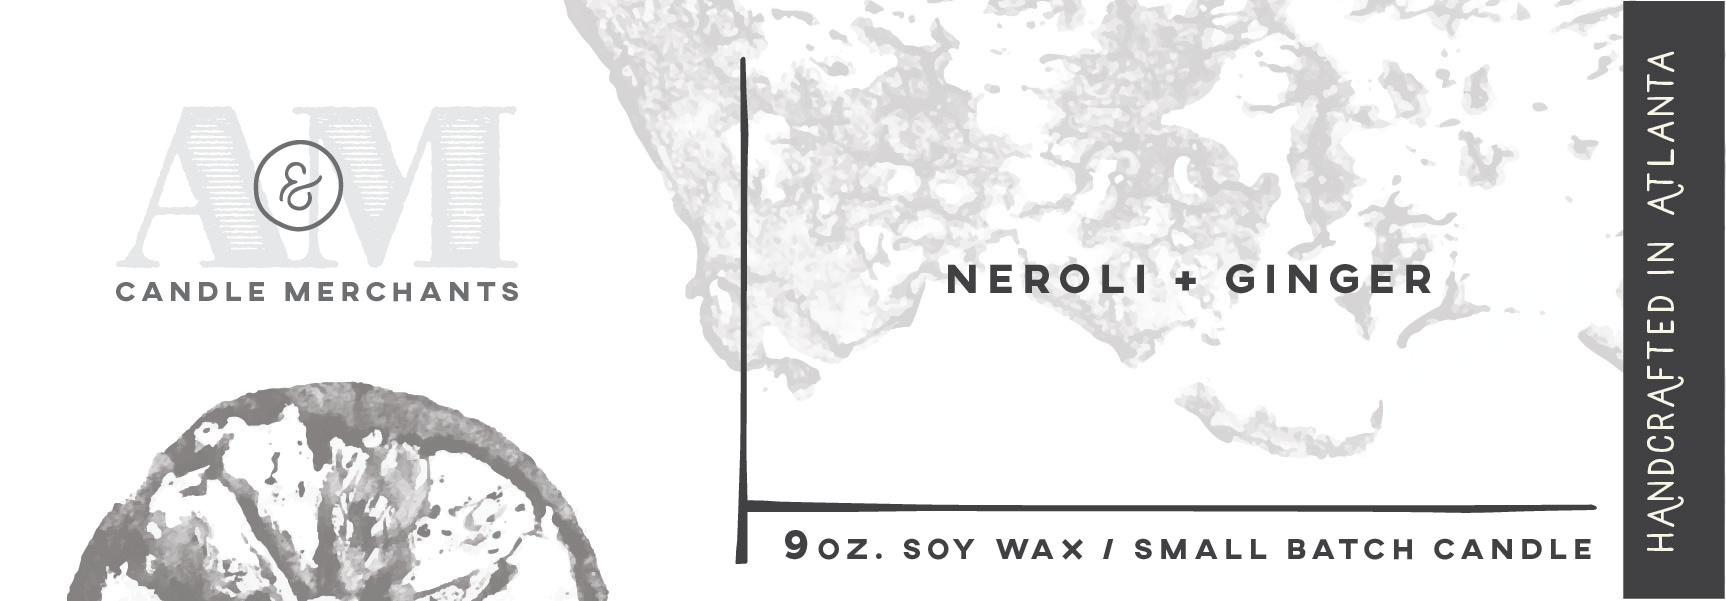 Neroli Ginger Candle Label